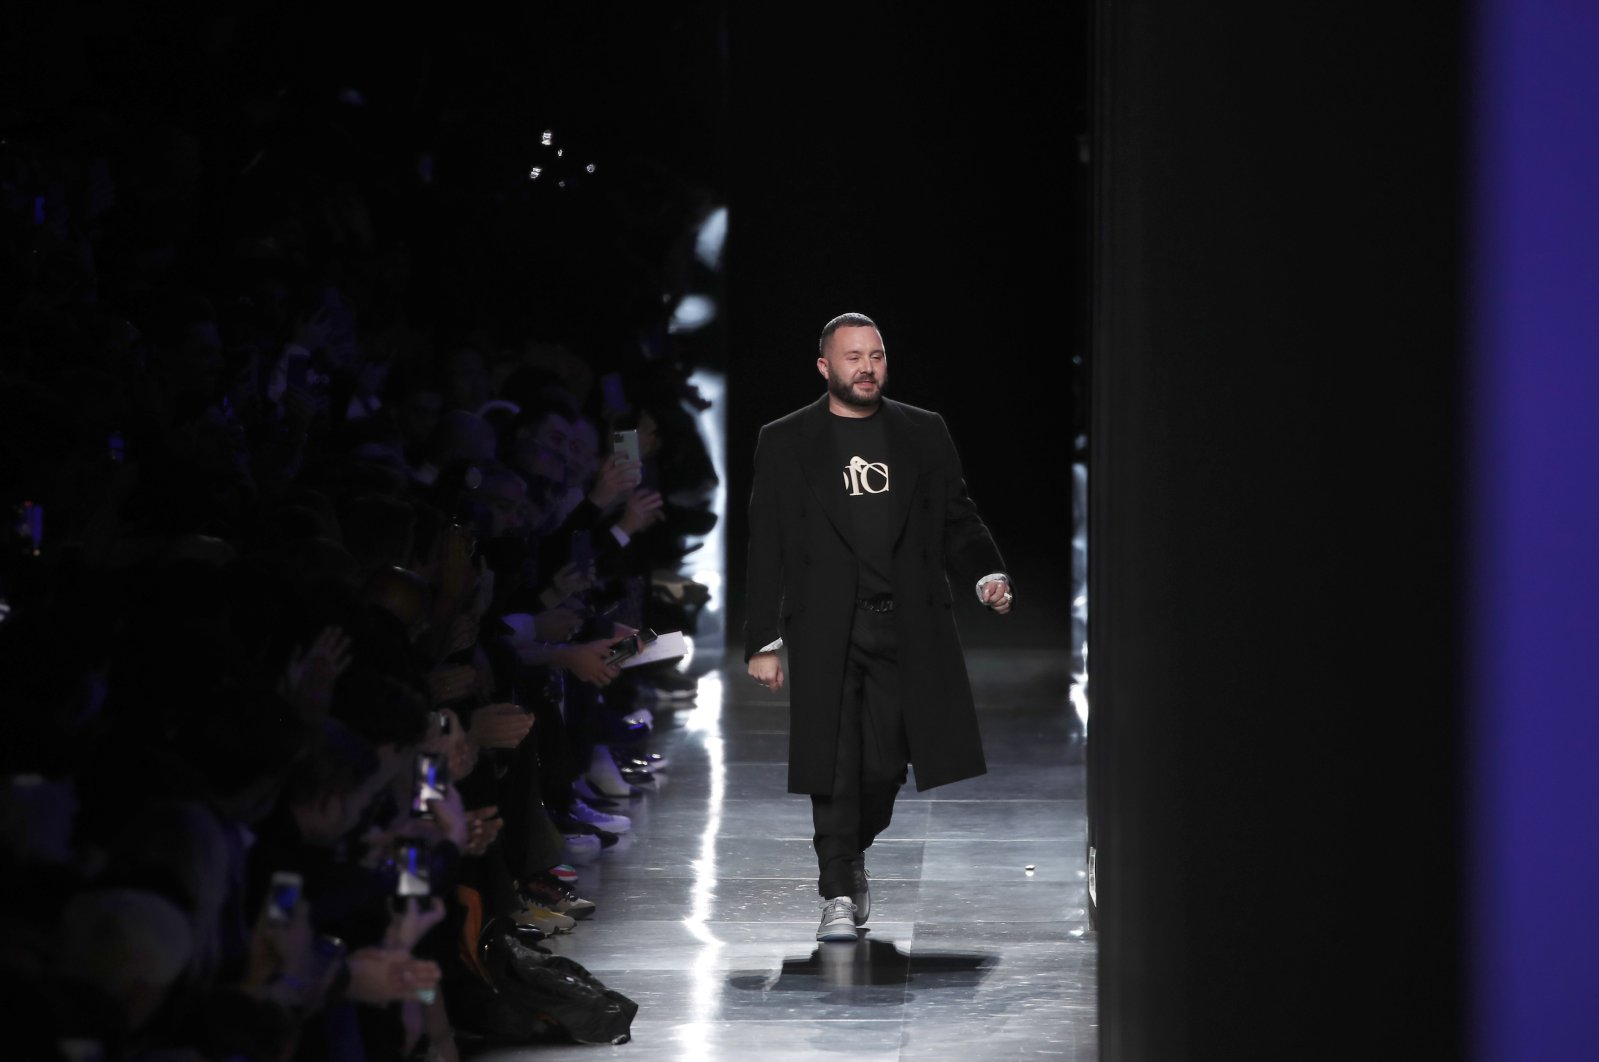 Designer Kim Jones accepts applause after the Dior Homme Men's Fall/Winter 2020-2021 fashion collection was presented in Paris, France, Jan. 17, 2020. (AP Photo)